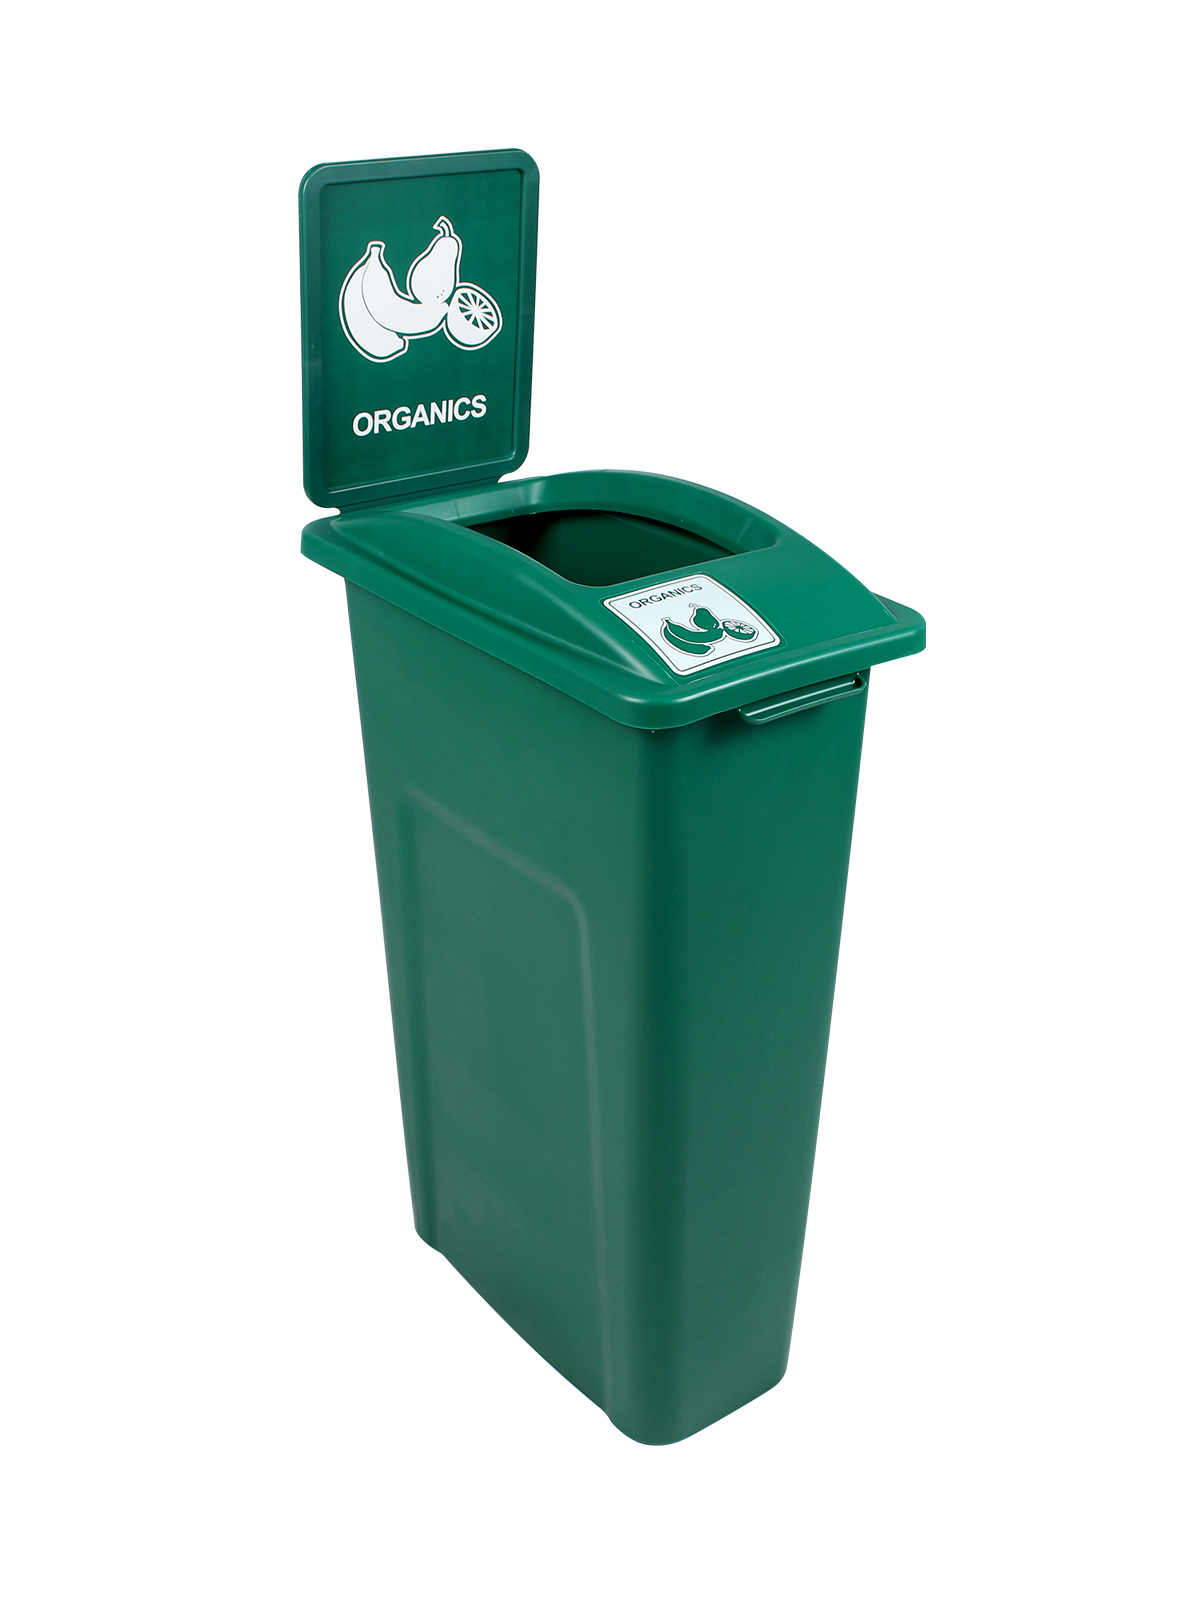 WASTE WATCHER - Single - Organics - Full - Green